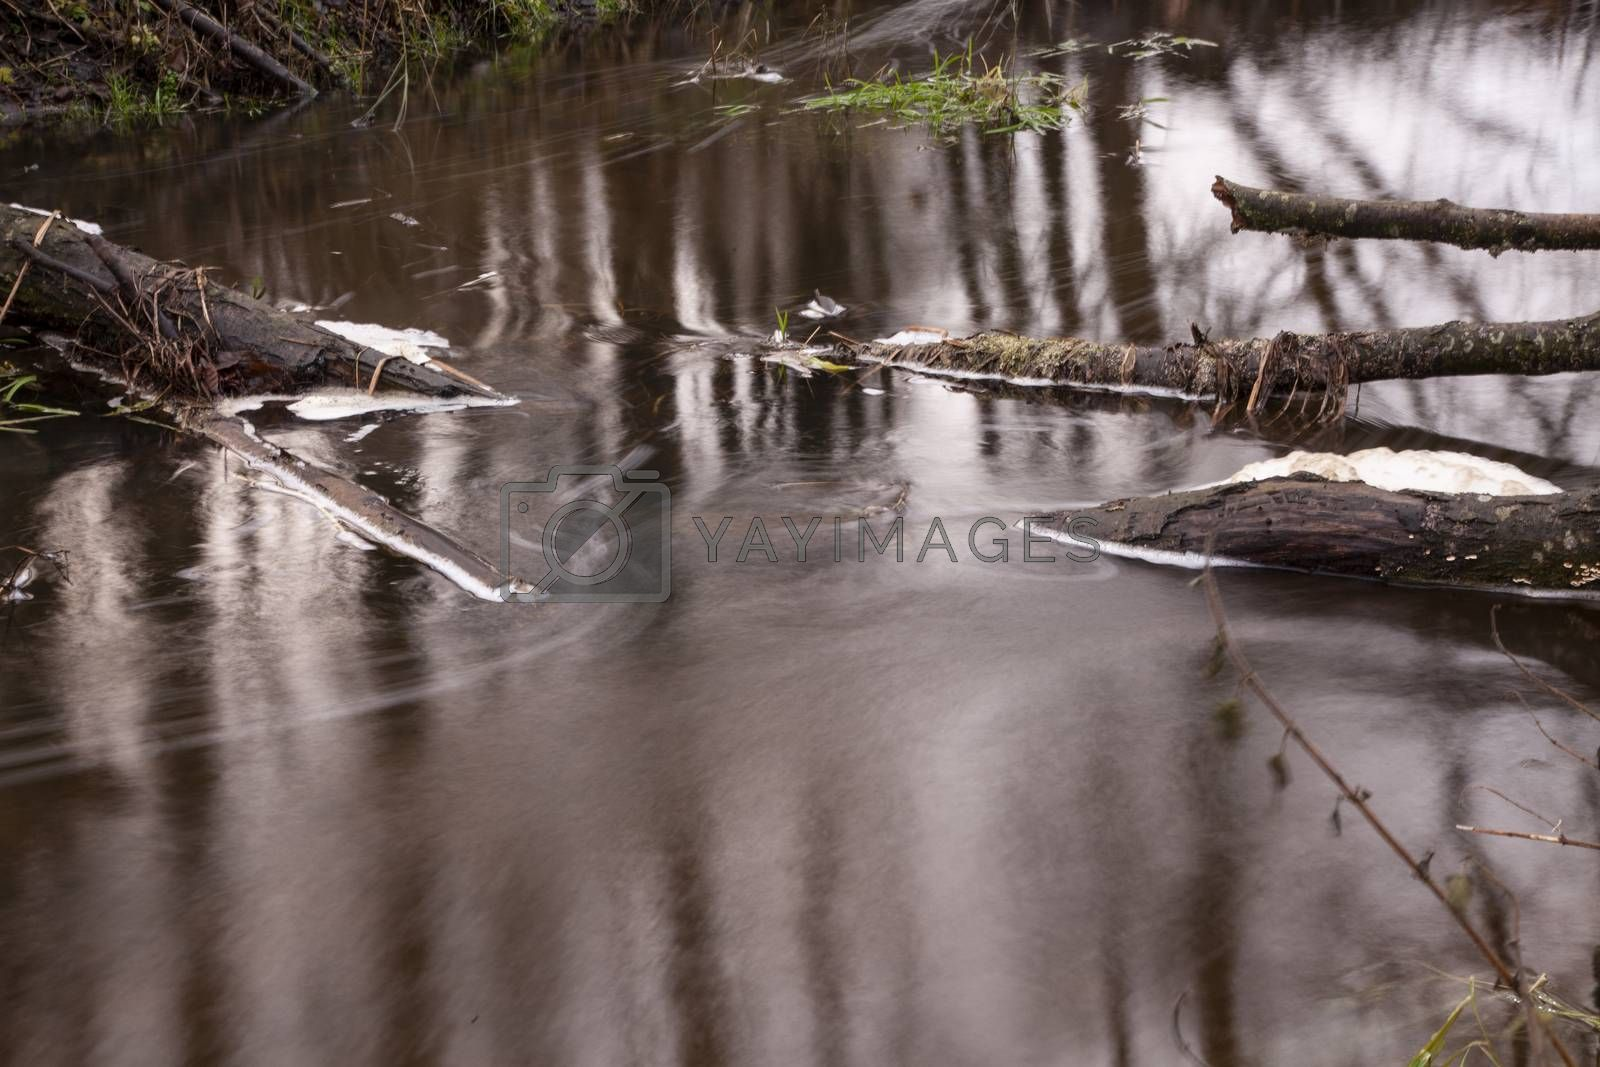 trees cut by beavers, intended for the construction of a beaver dam on the river